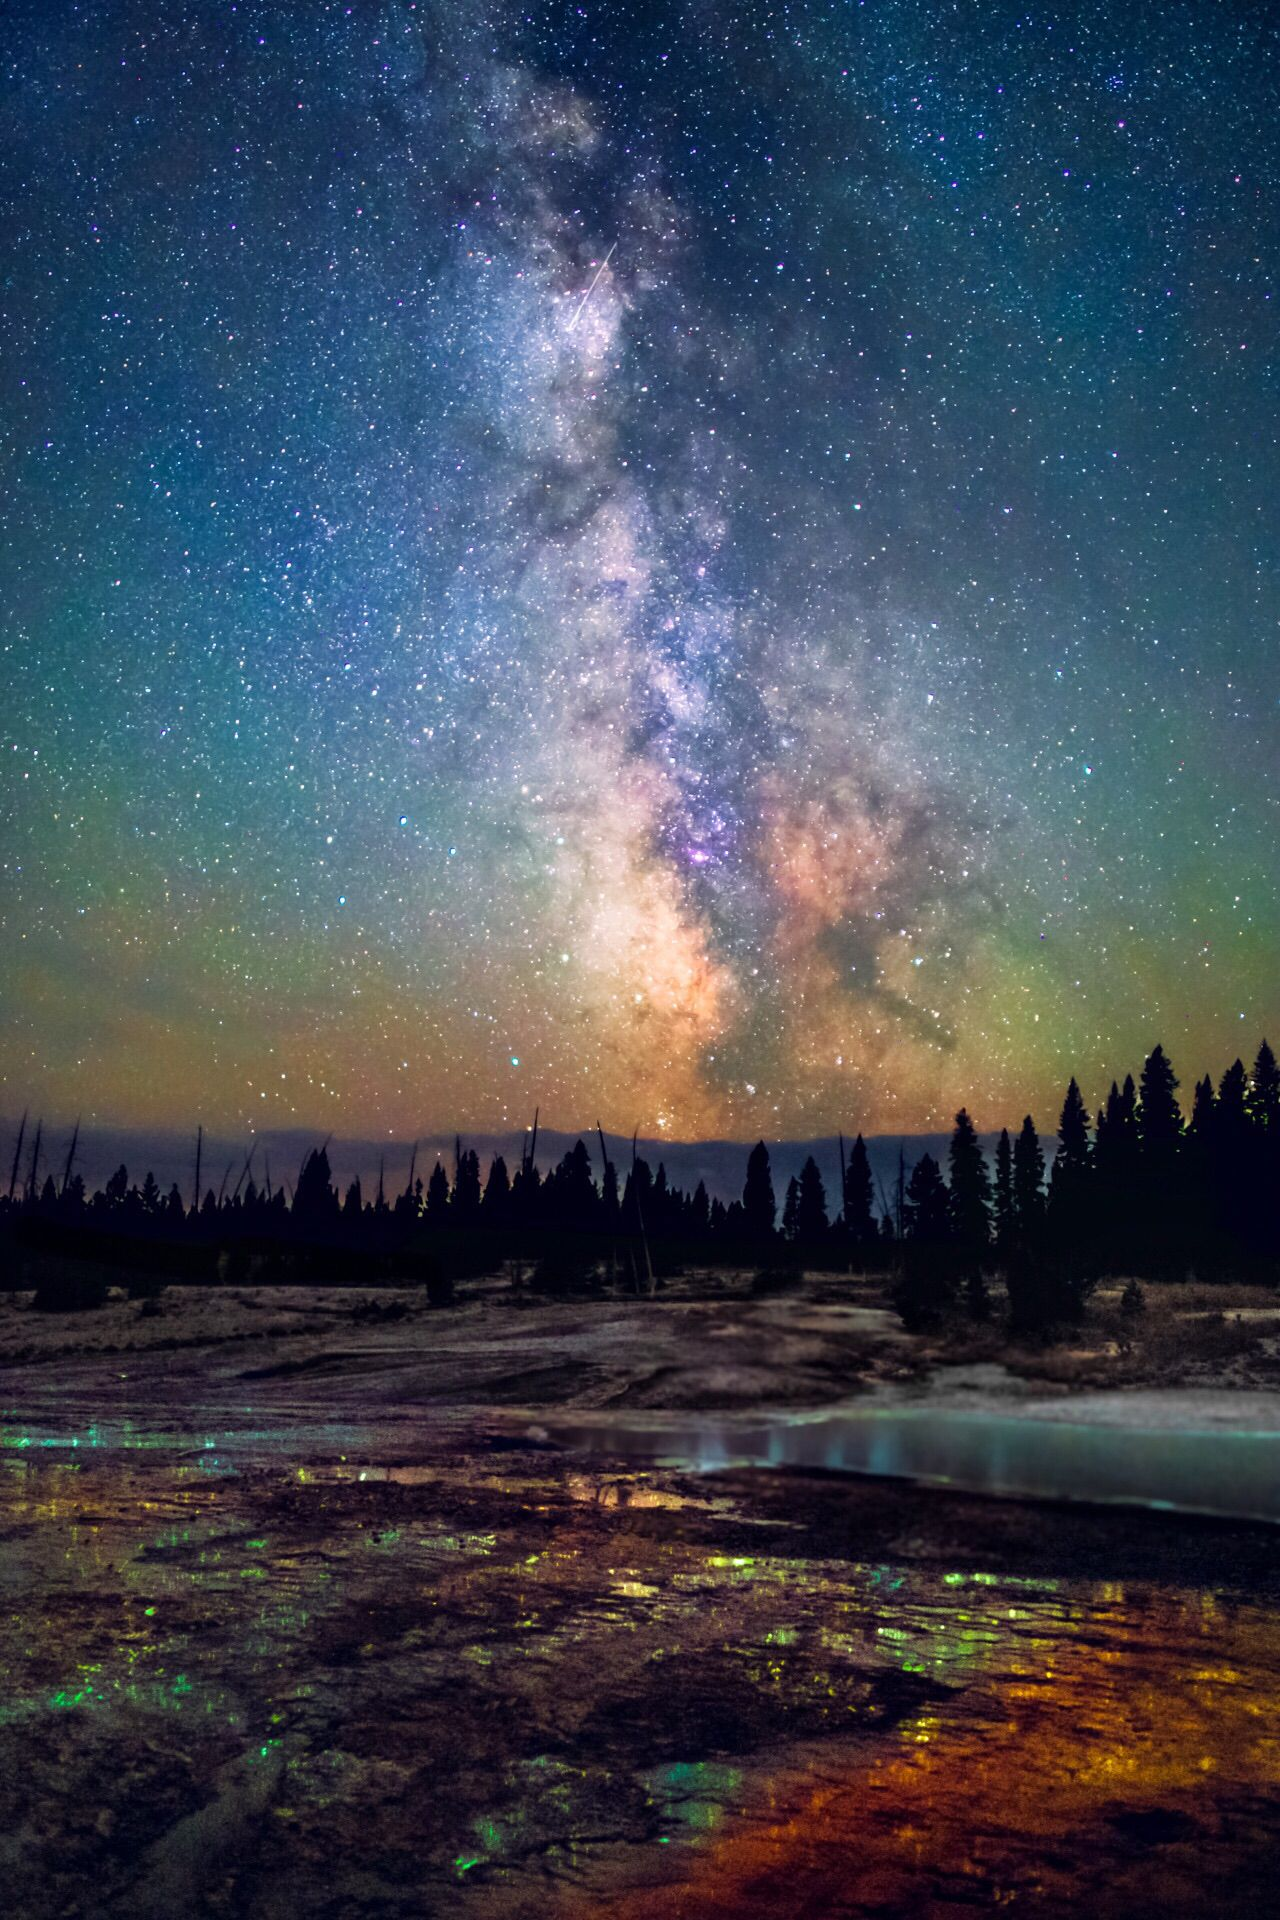 In every season, at every hour, Yellowstone National Park in Wyoming is a stunning and surprising landscape. Remote enough for dark skies to allow the Milky Way to shine and featuring steam rising from hot springs tinted with colorful bacteria and reflecting the aurora borealis, a night in the park offers enough wonders for a lifetime. Photo courtesy of Bryony Richards.